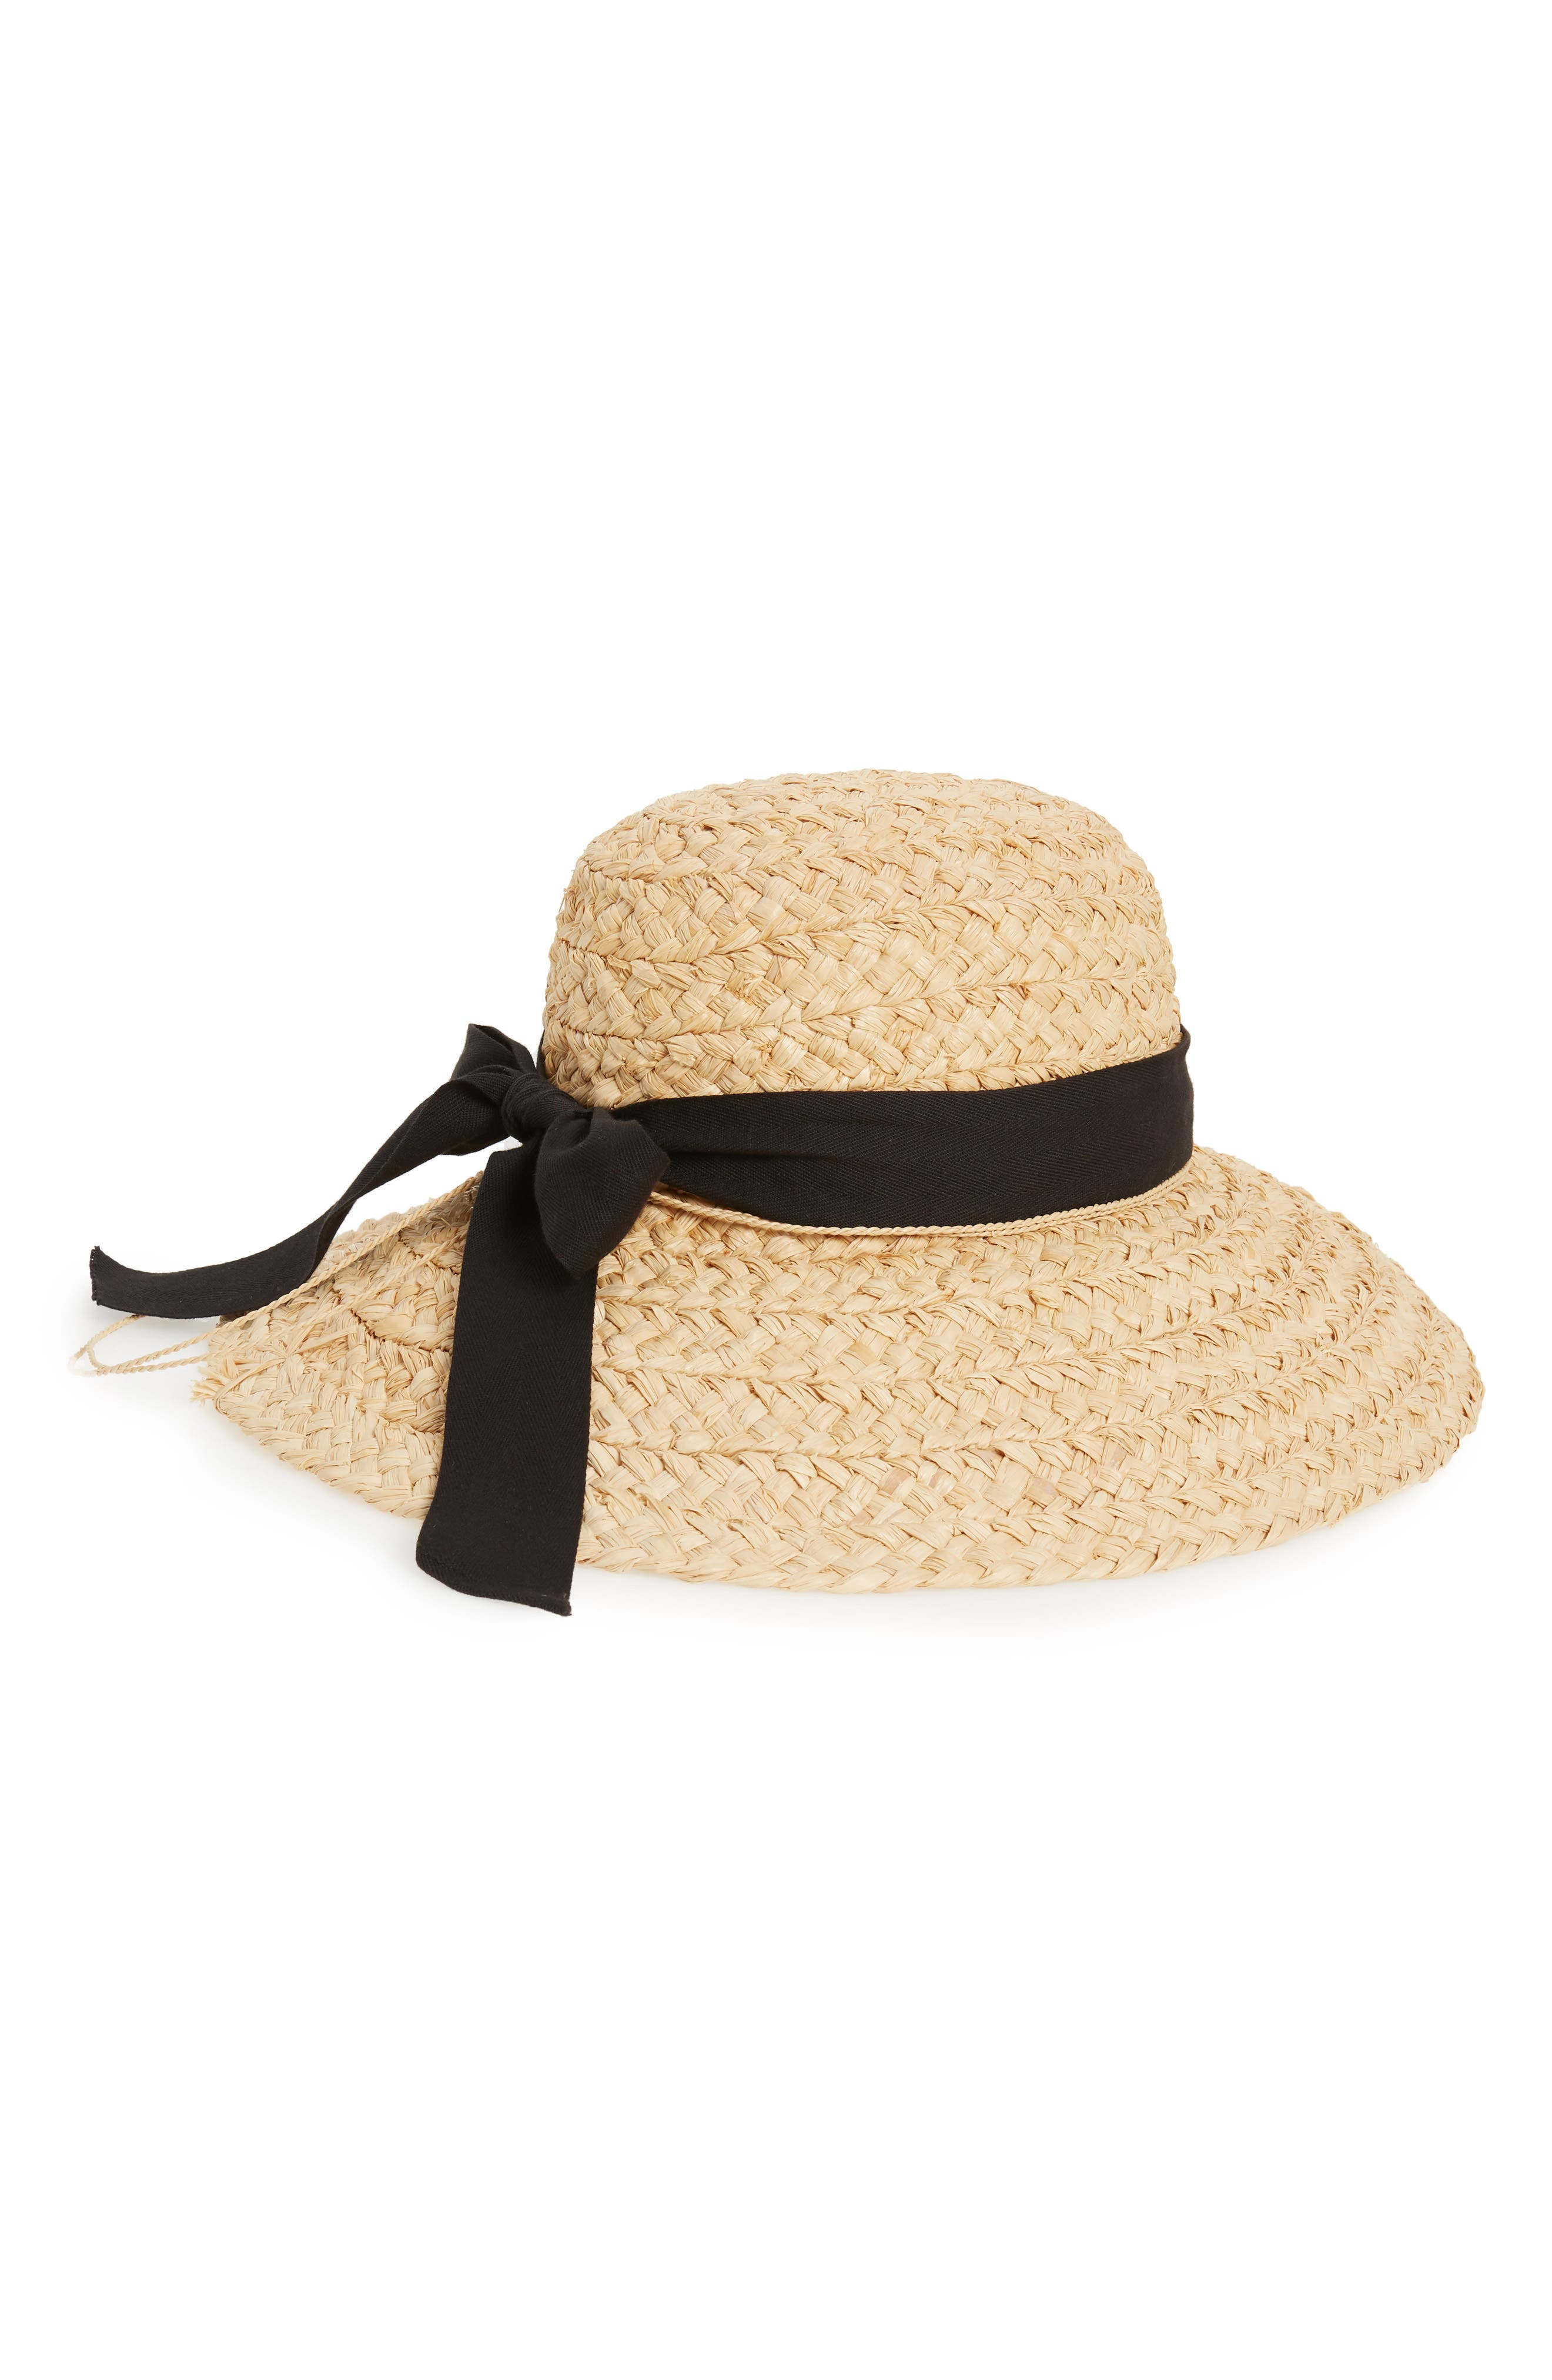 Helen Kaminiski Classic Wide Braid Raffia Hat - Black